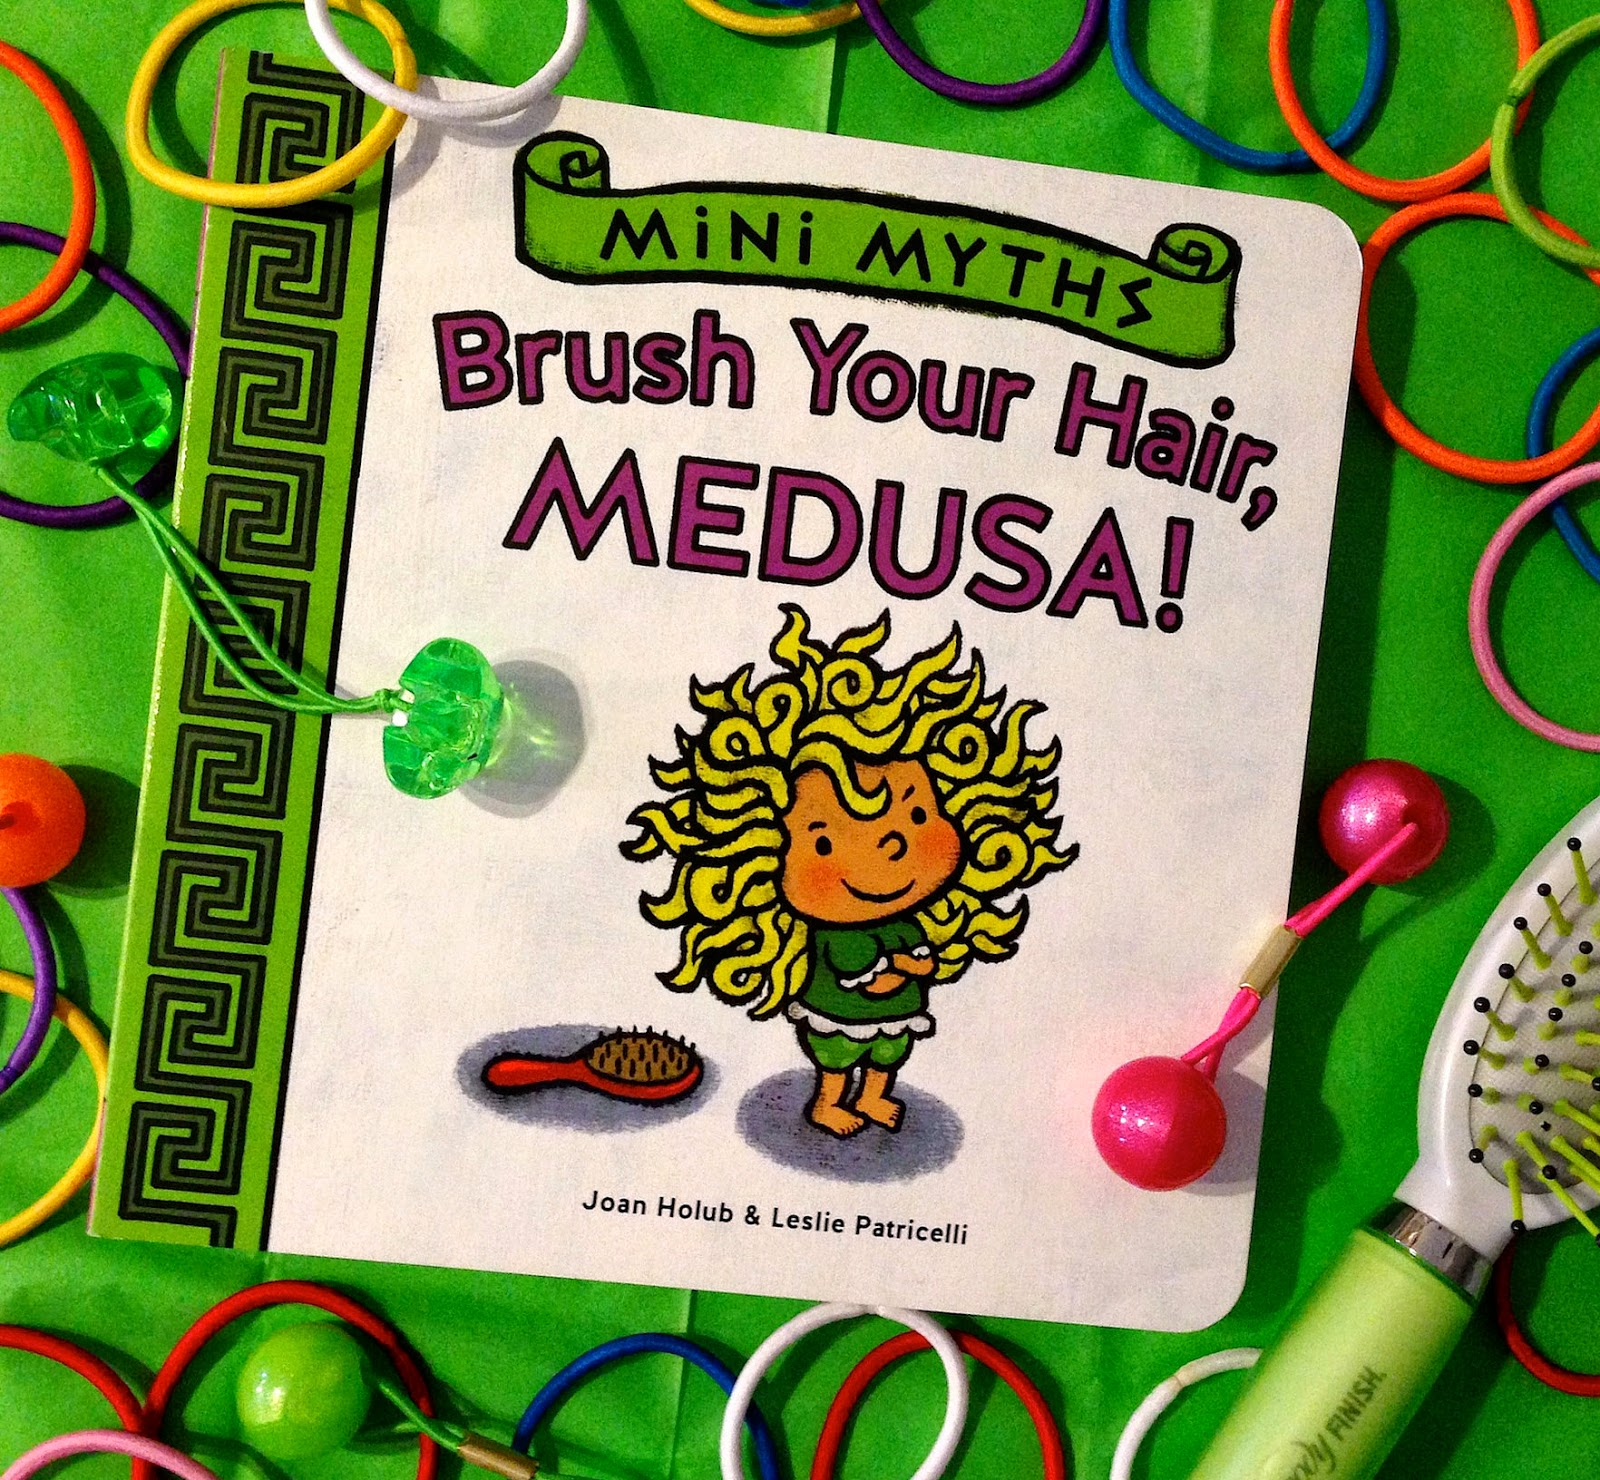 http://www.amazon.com/Mini-Myths-Brush-Your-Medusa/dp/1419709534/ref=pd_sim_b_3?ie=UTF8&refRID=1DFKGZF74WSZC6GPTNHQ